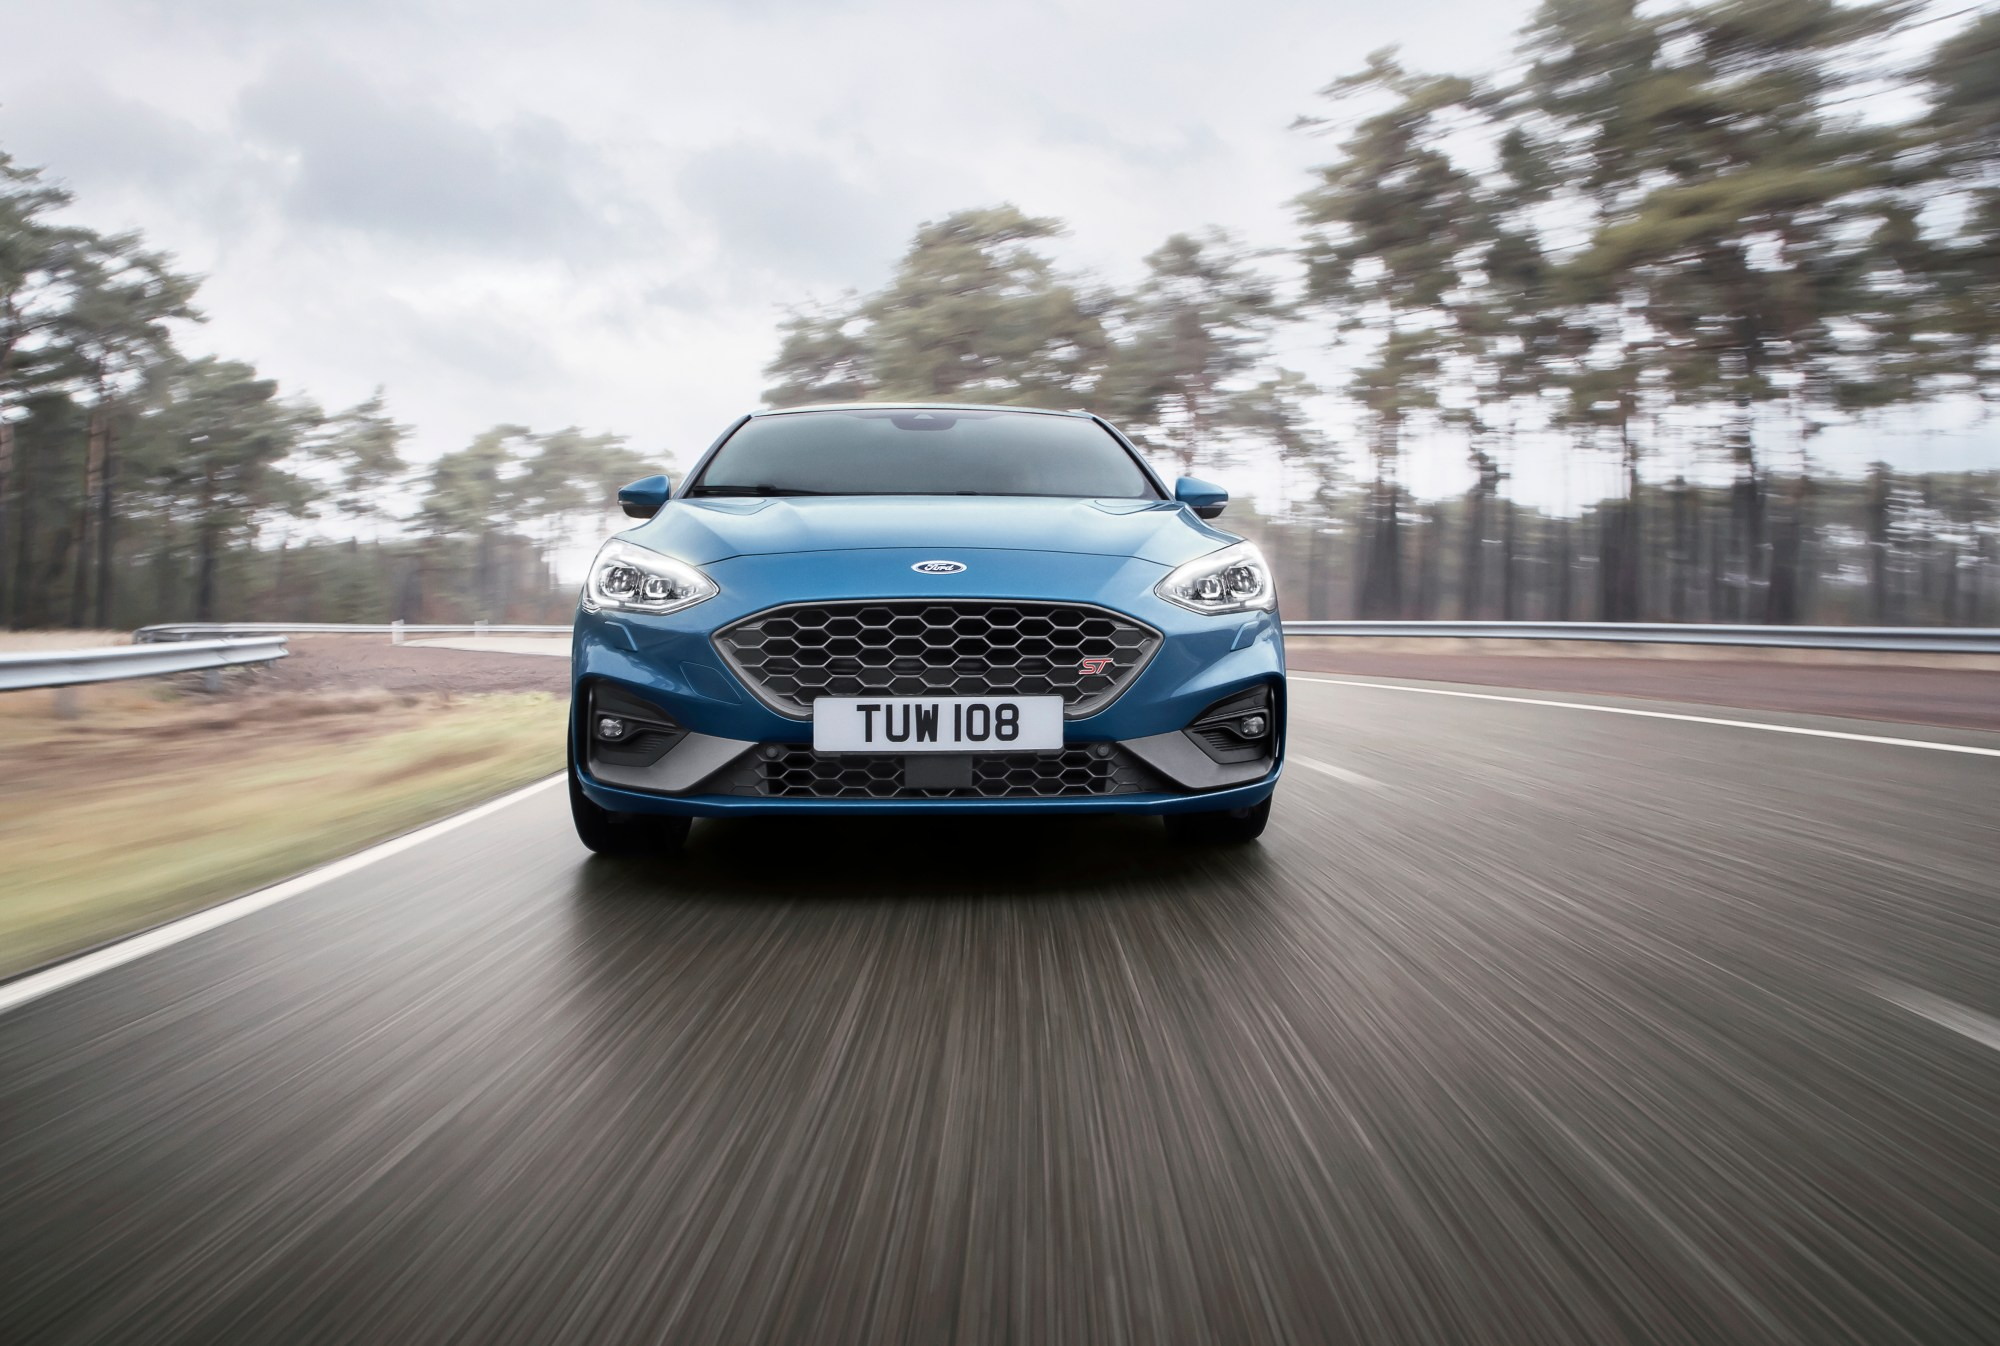 hight resolution of ford focus st 2019 27 jan 2019